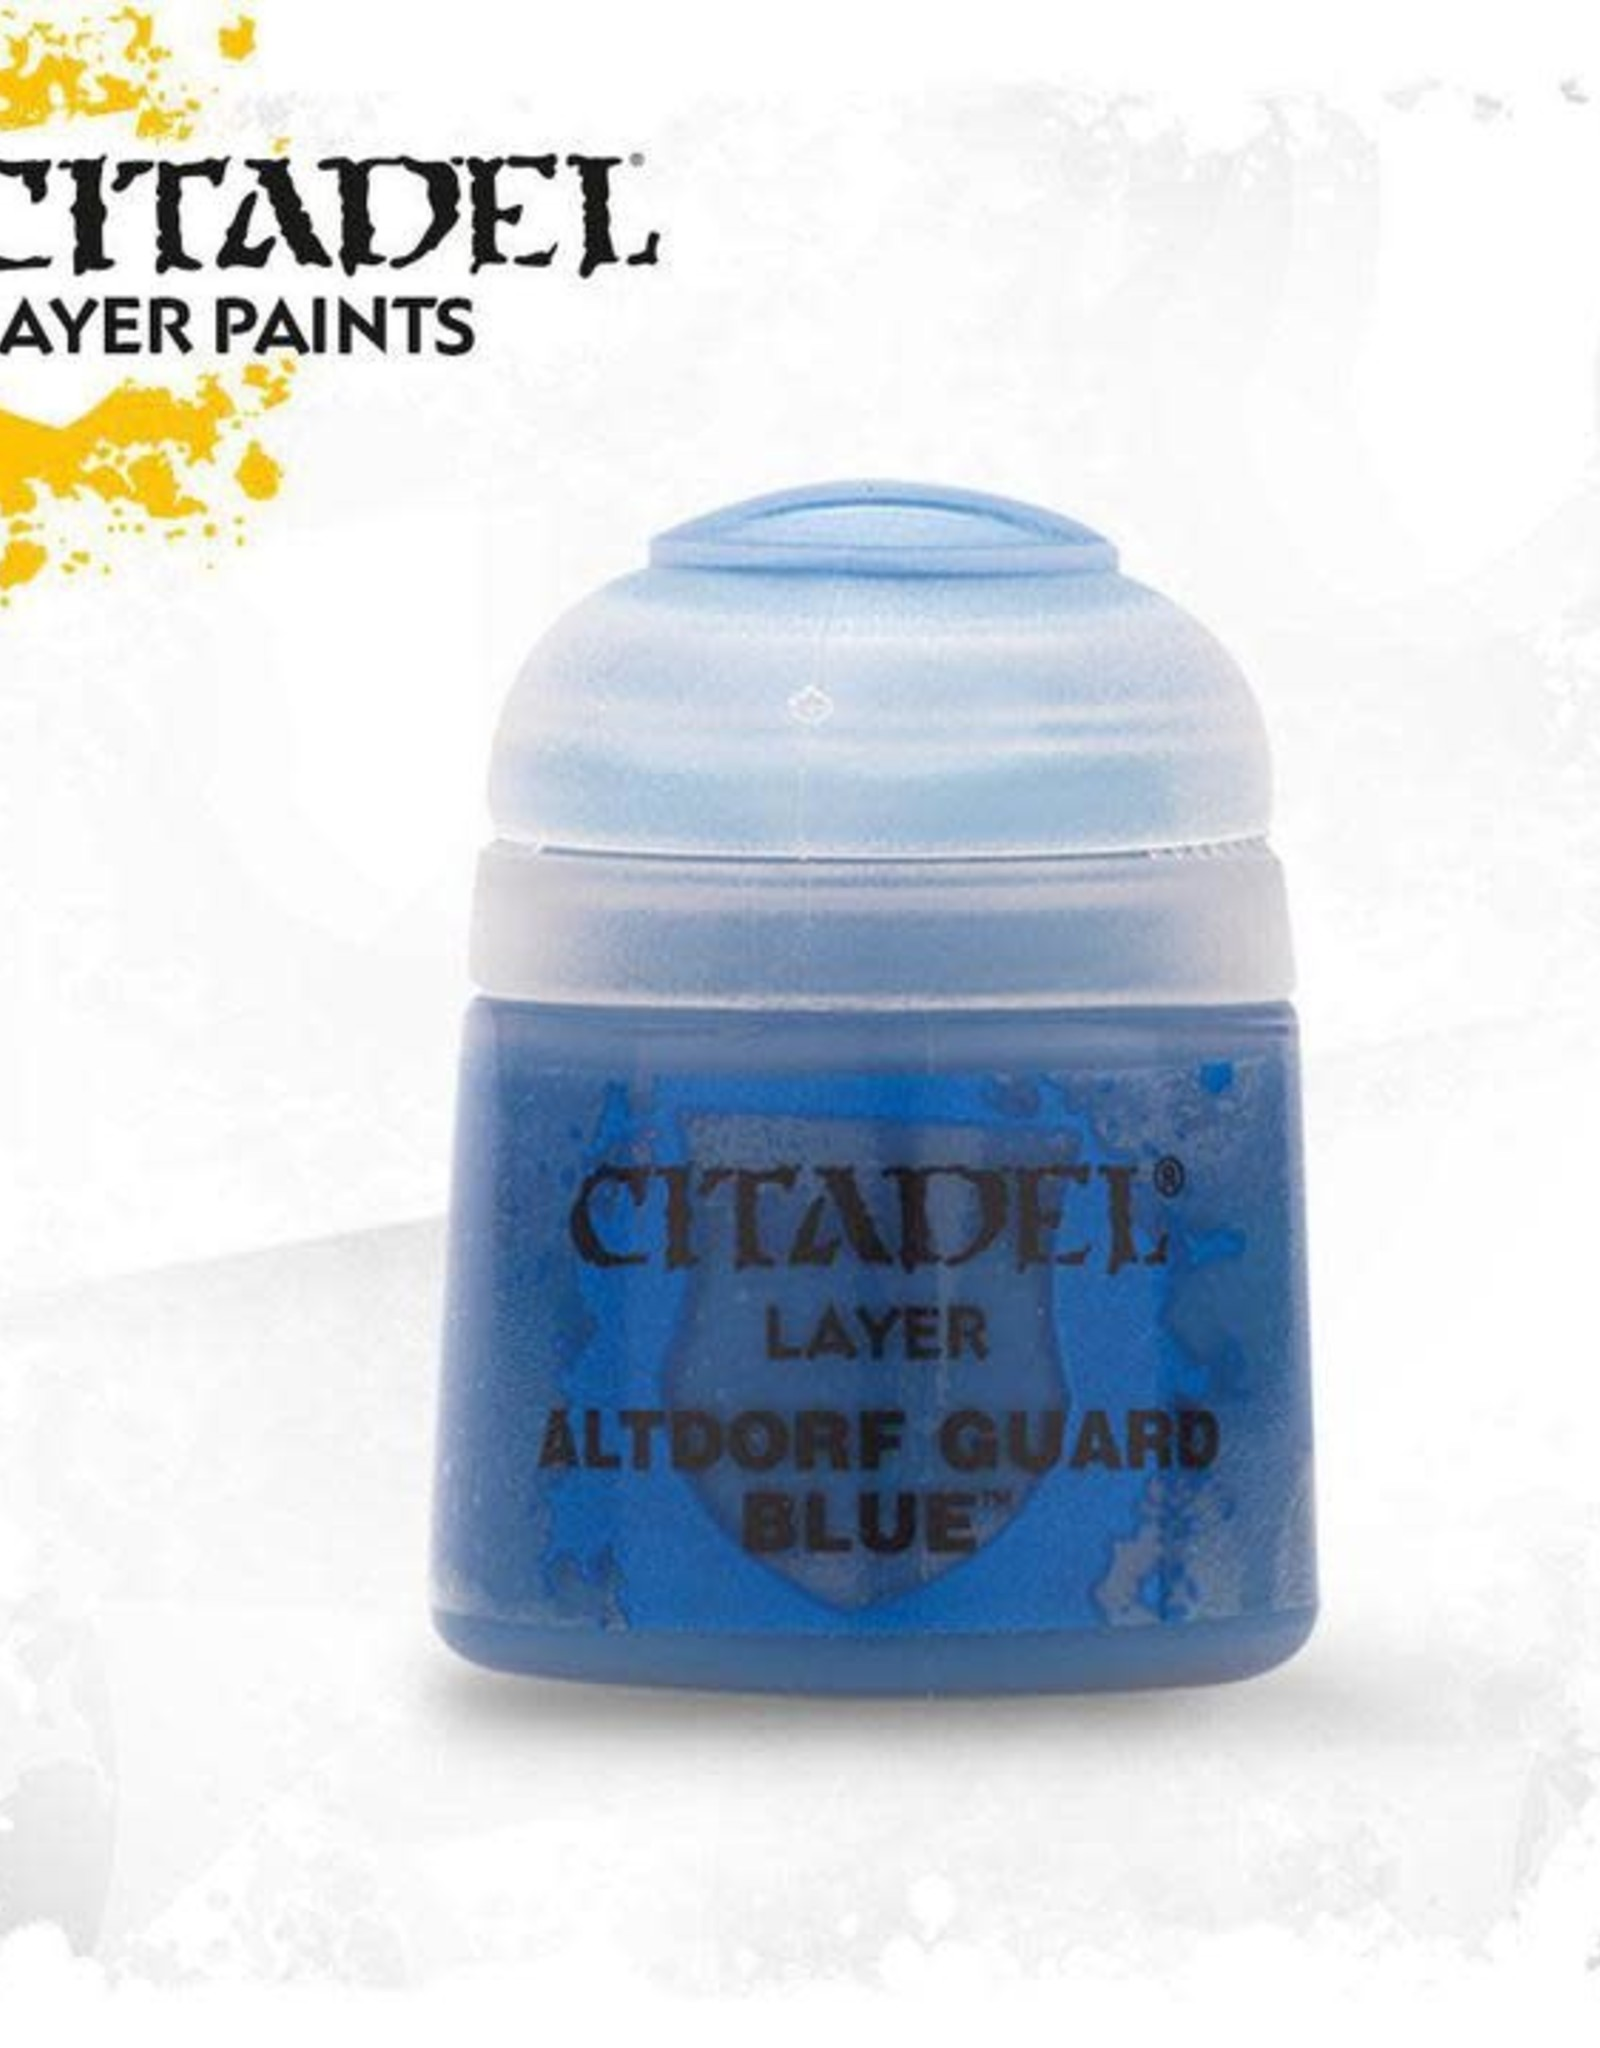 Games Workshop Citadel Paint: Layer - Altdorf Guard Blue